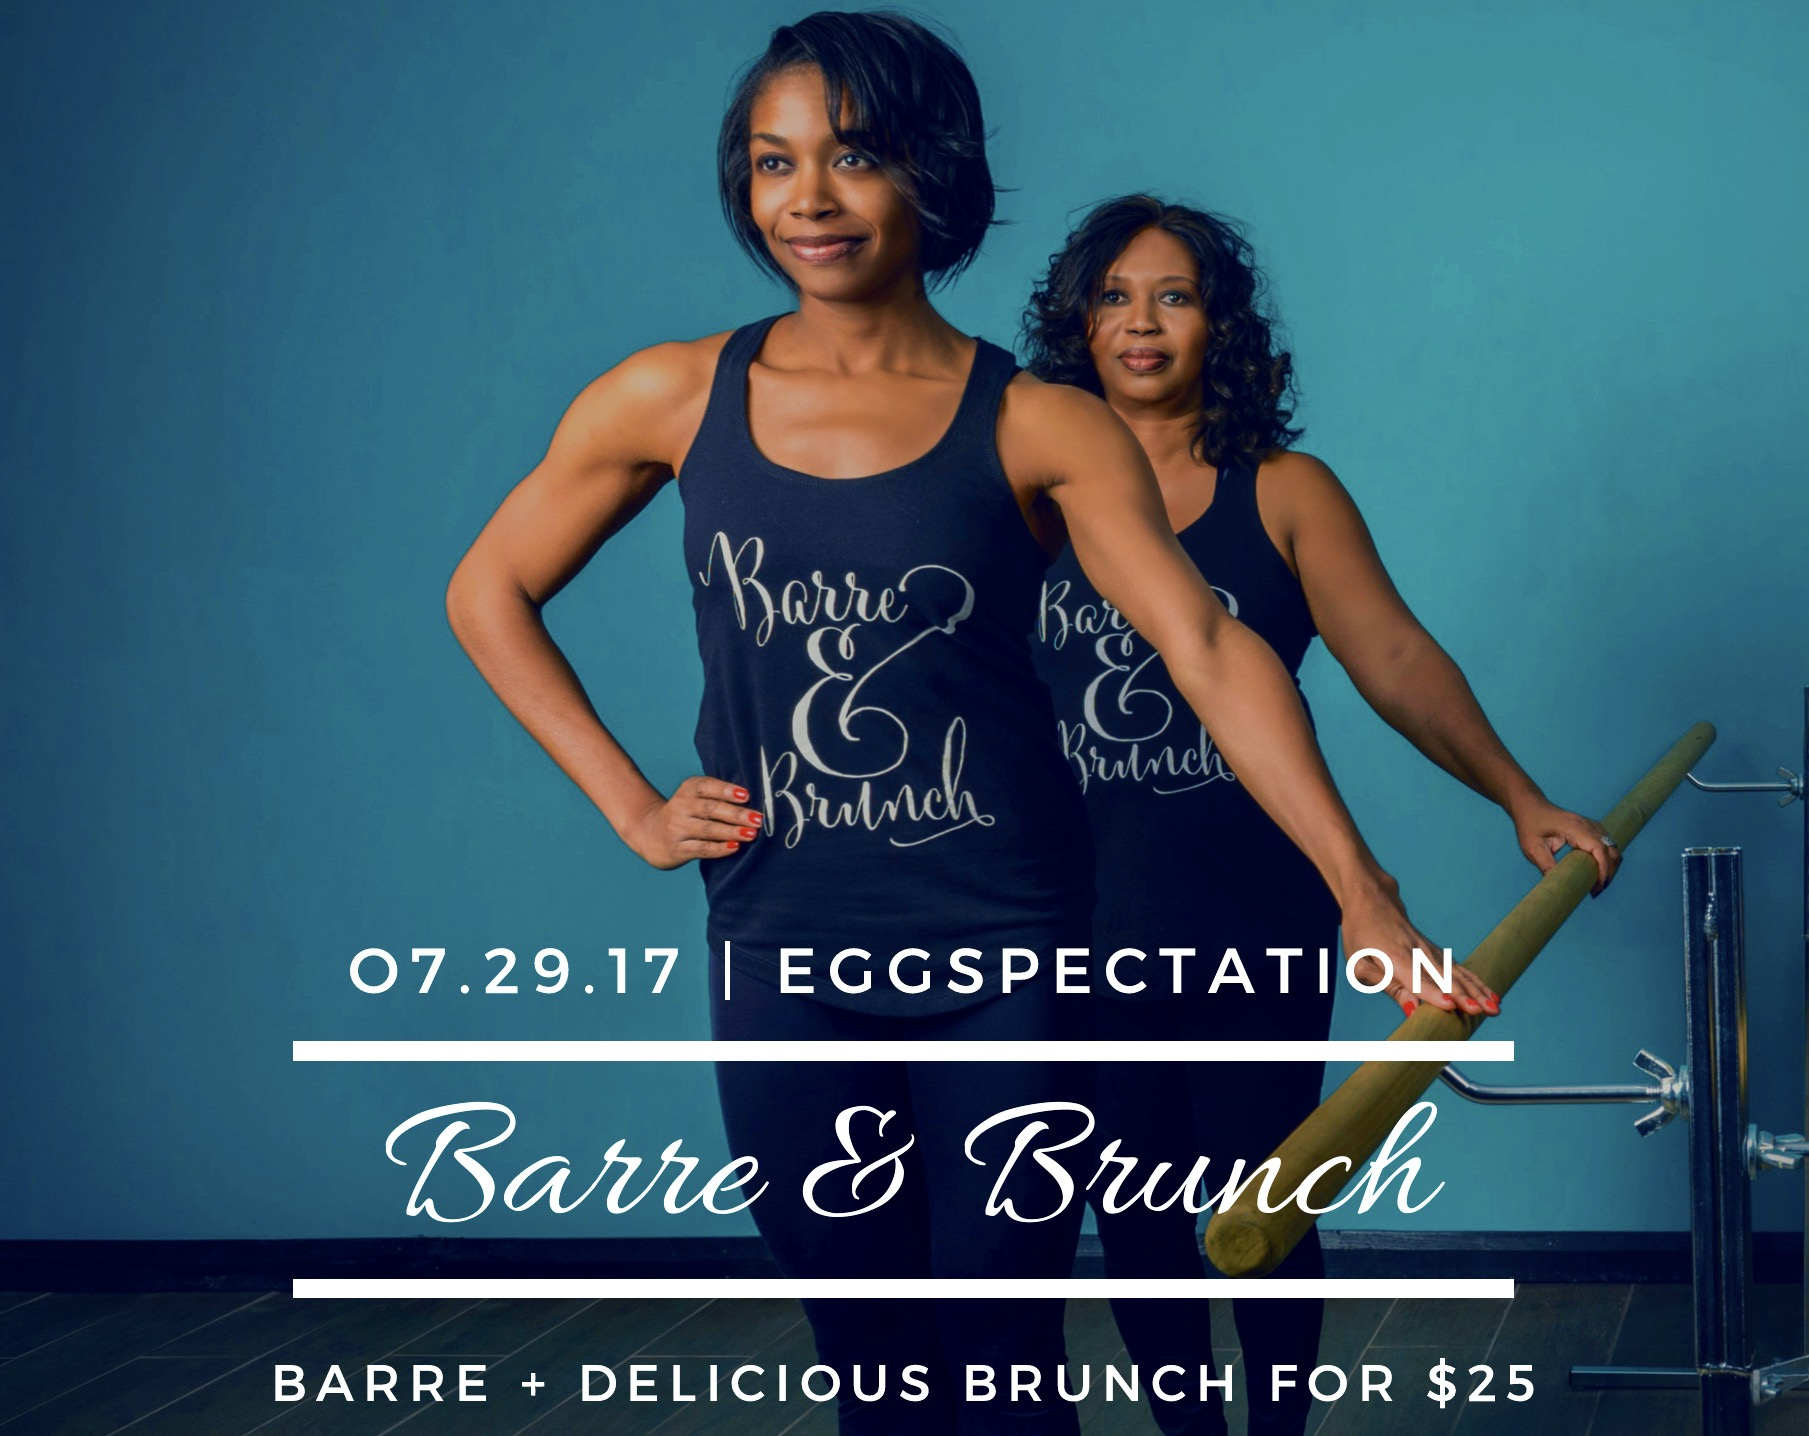 Barre & Brunch